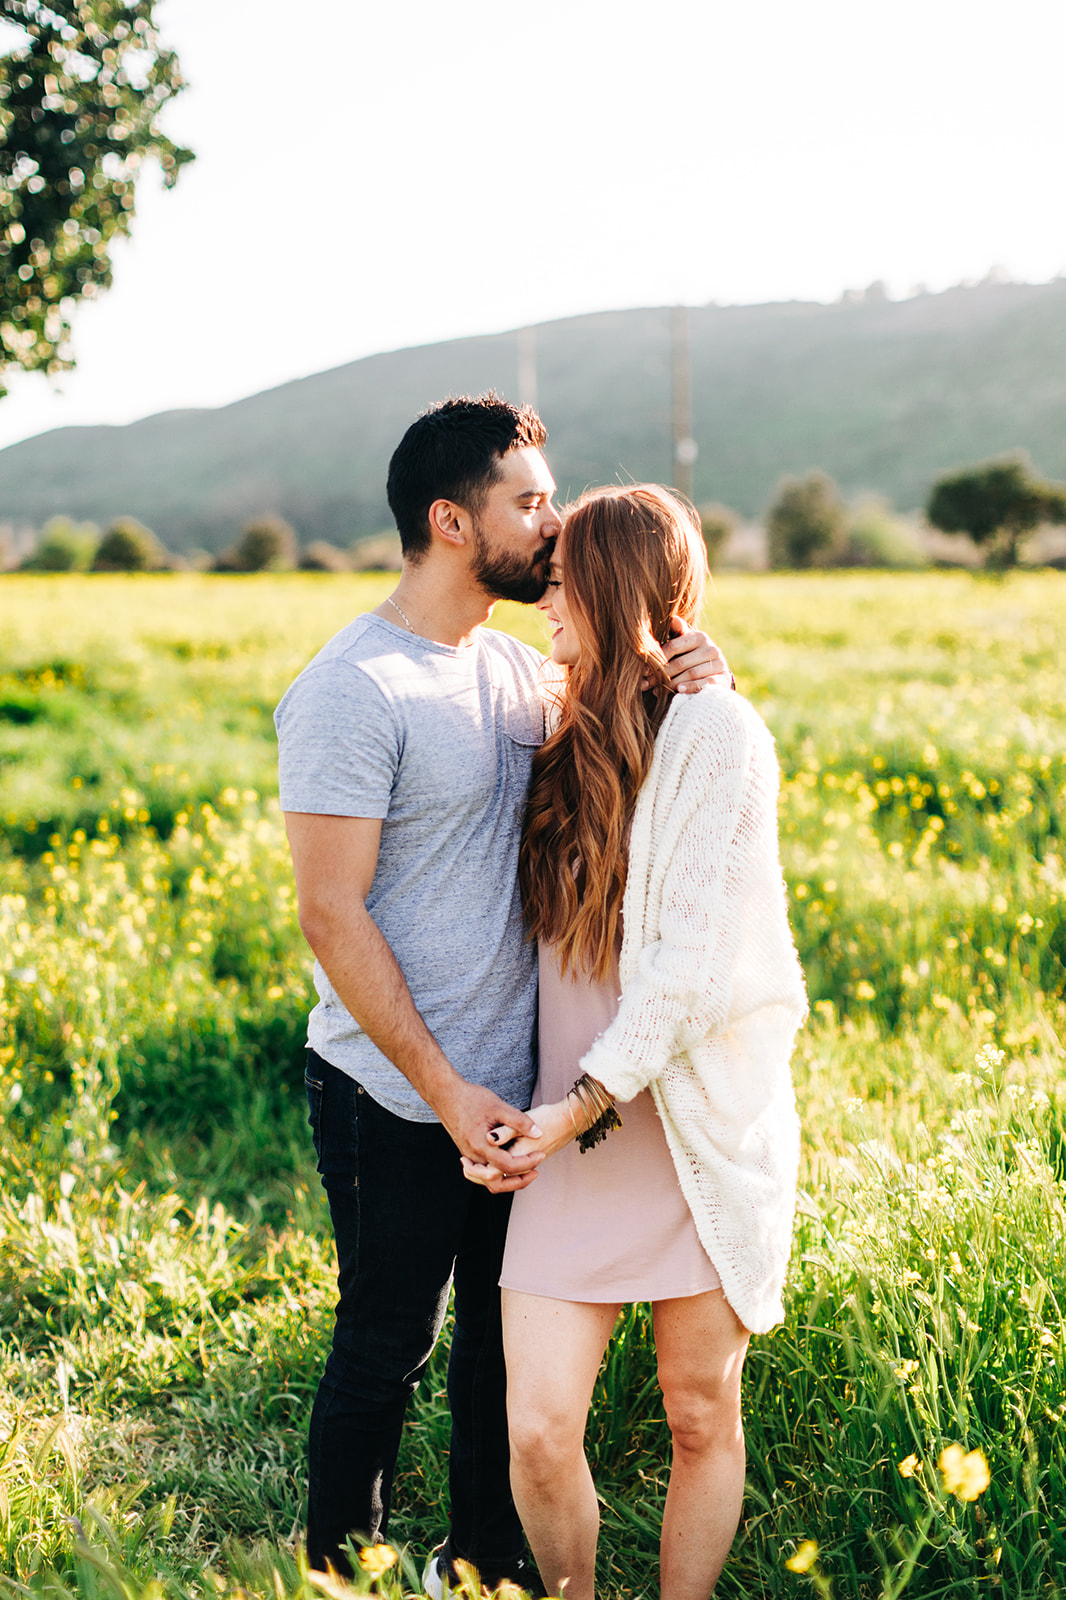 Katie-Yovin_Richard_Superbloom-Engagement-Photos_Clarisse-Rae_Southern-California-Wedding-Photographer-Orange-County-Engagement-Photos-24